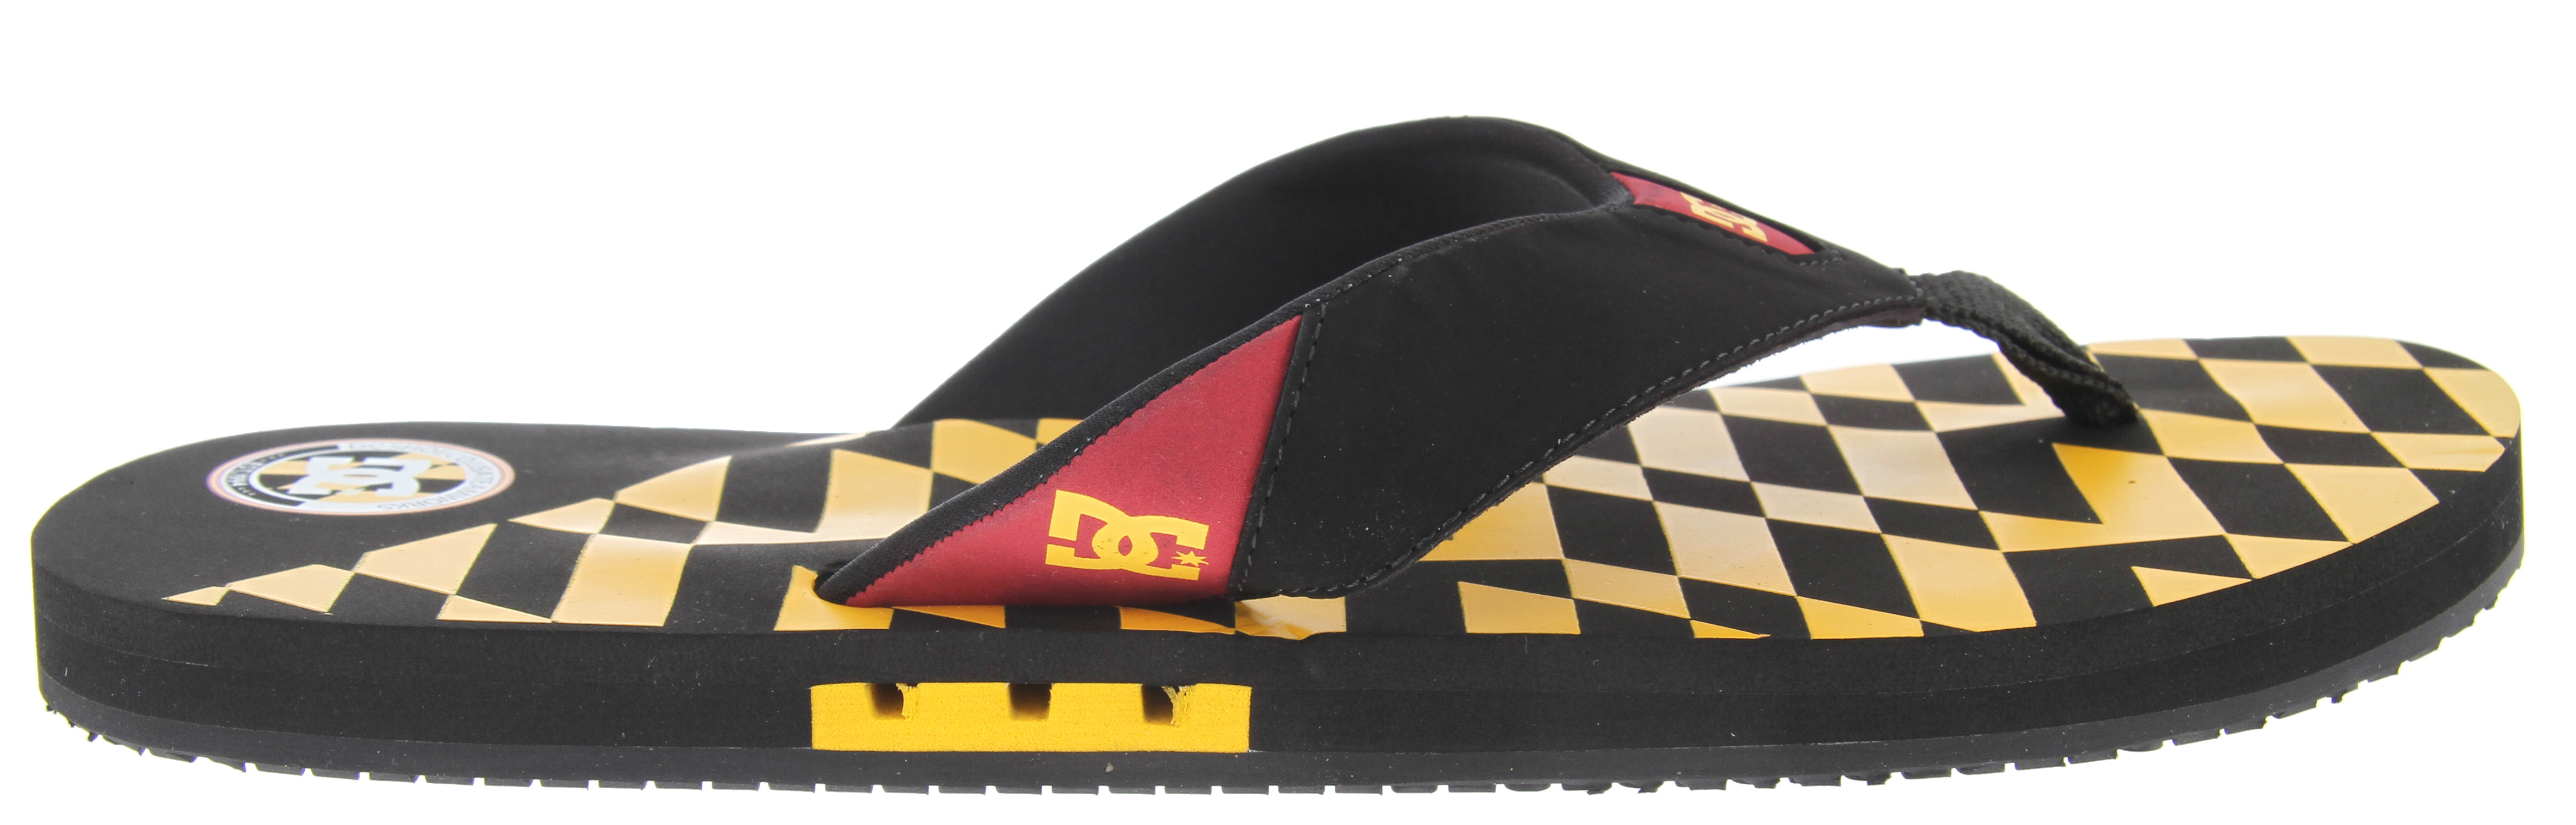 Skateboard Key Features of the DC Vapor TP Sandals: Travis Pastrana Signature Sandal Super soft upper Durable rubber construction EVA footbed Arch cookie Comfortable foot friendly toe post Non-slip - $13.95